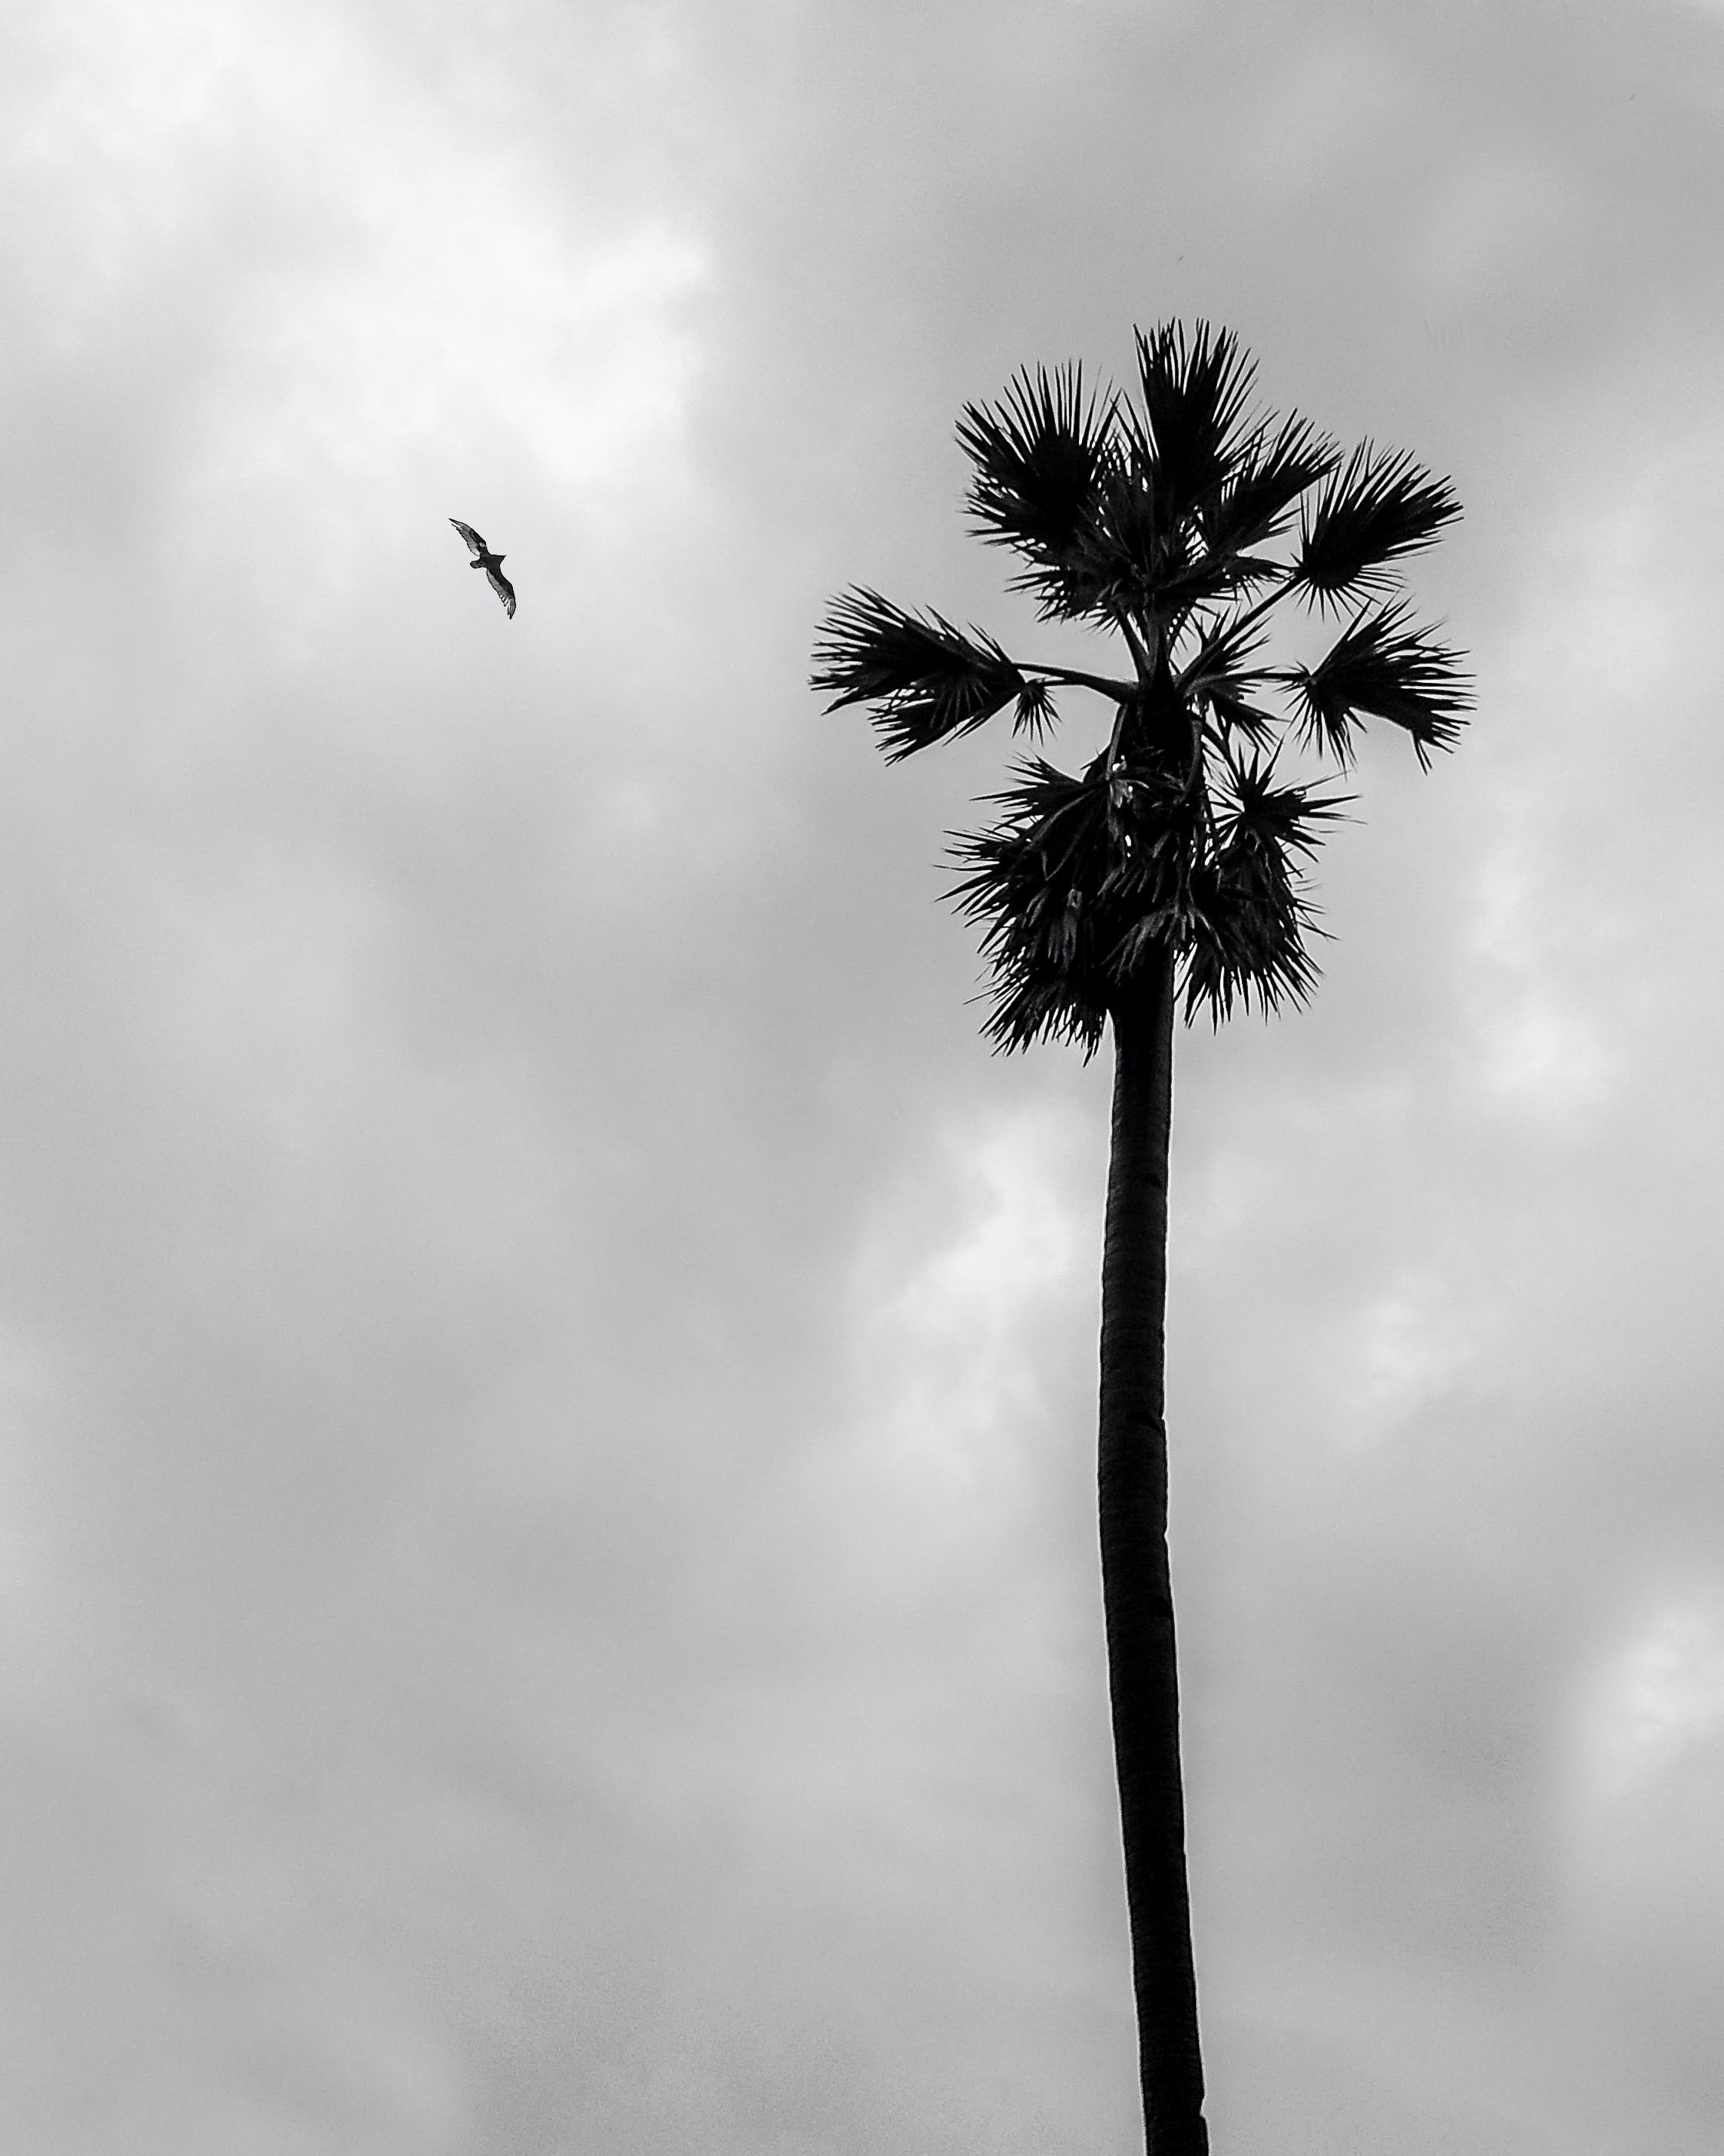 Free stock photo of bald eagle, beach, bird, black and white